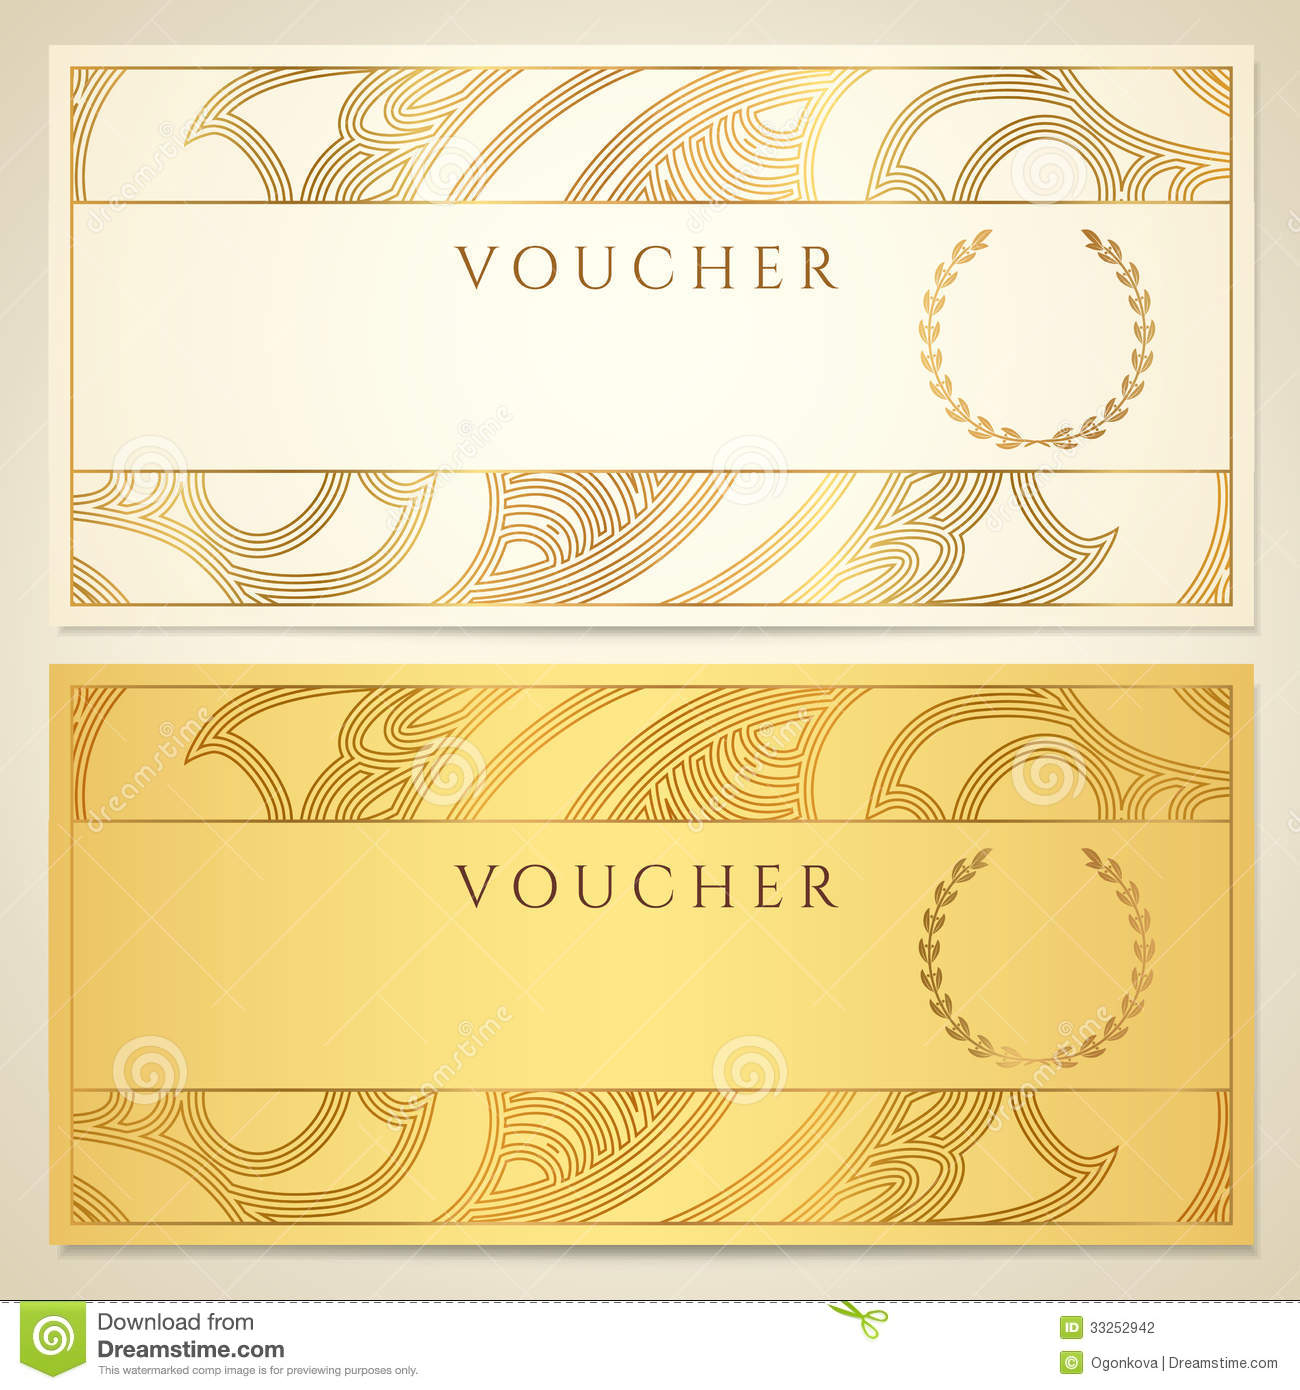 Voucher, Gift Certificate, Coupon Template. Stock Photography ...